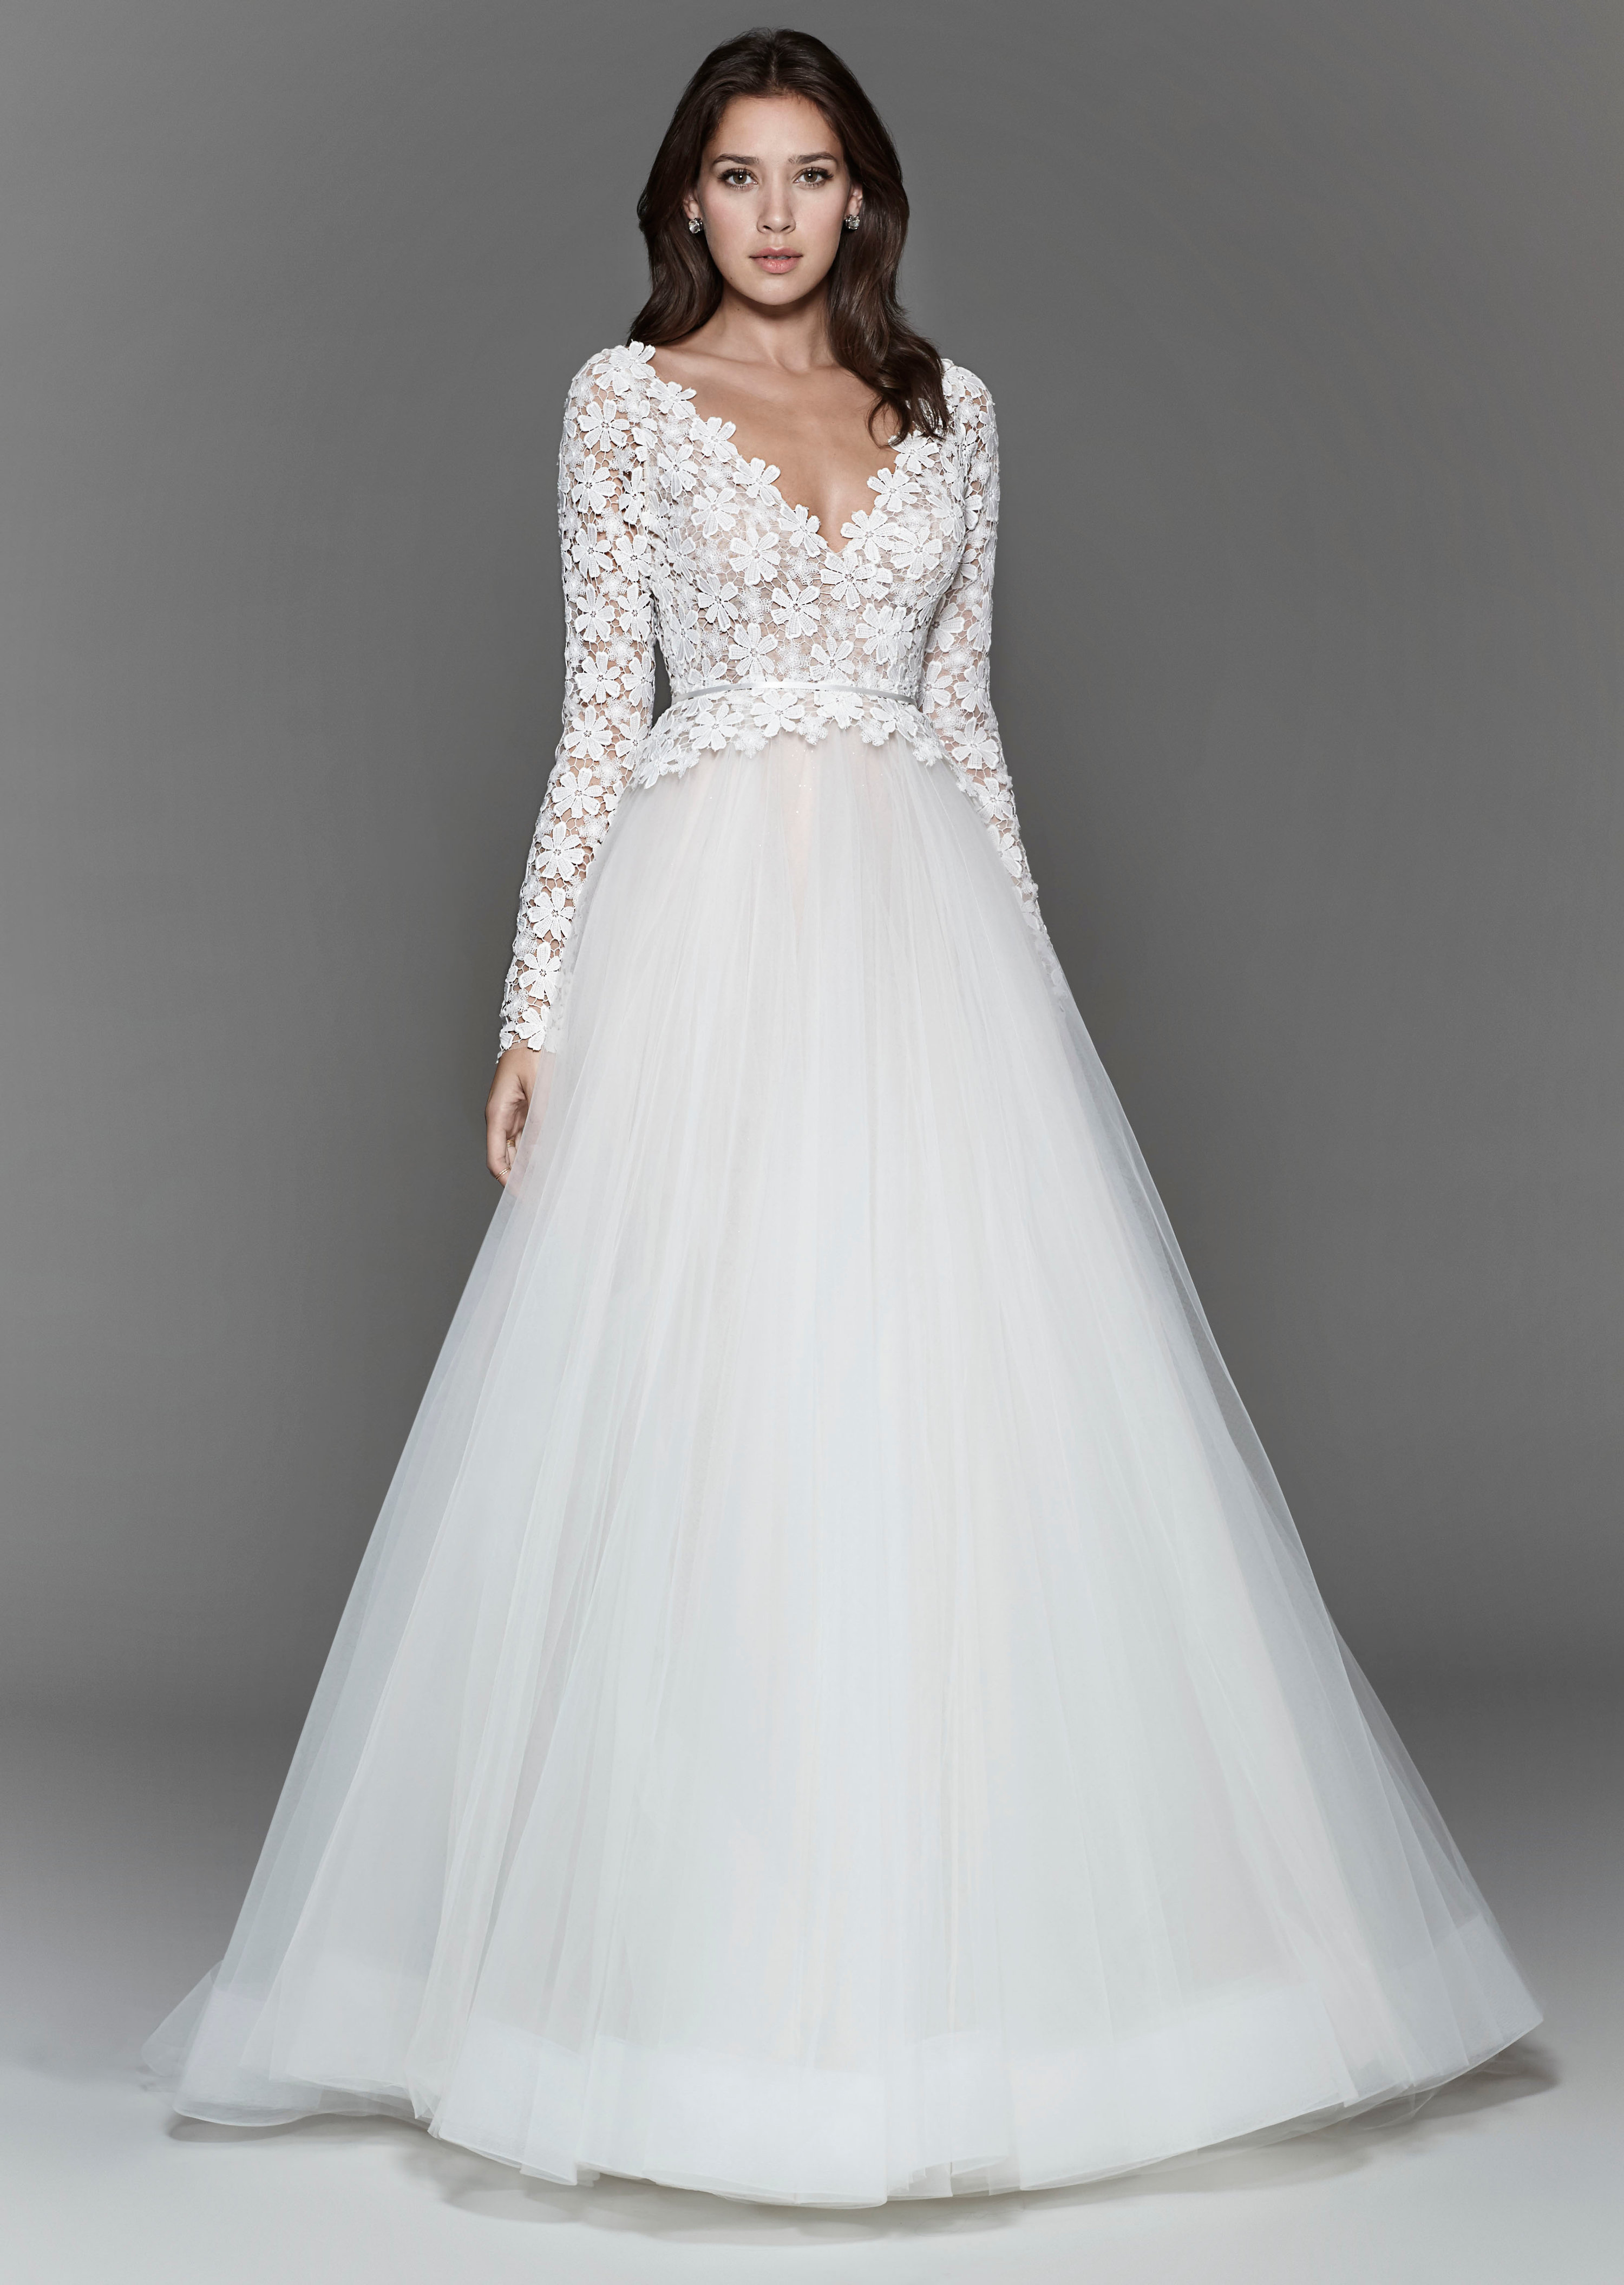 Bridal Gowns and Wedding Dresses by JLM Couture - Style 2700